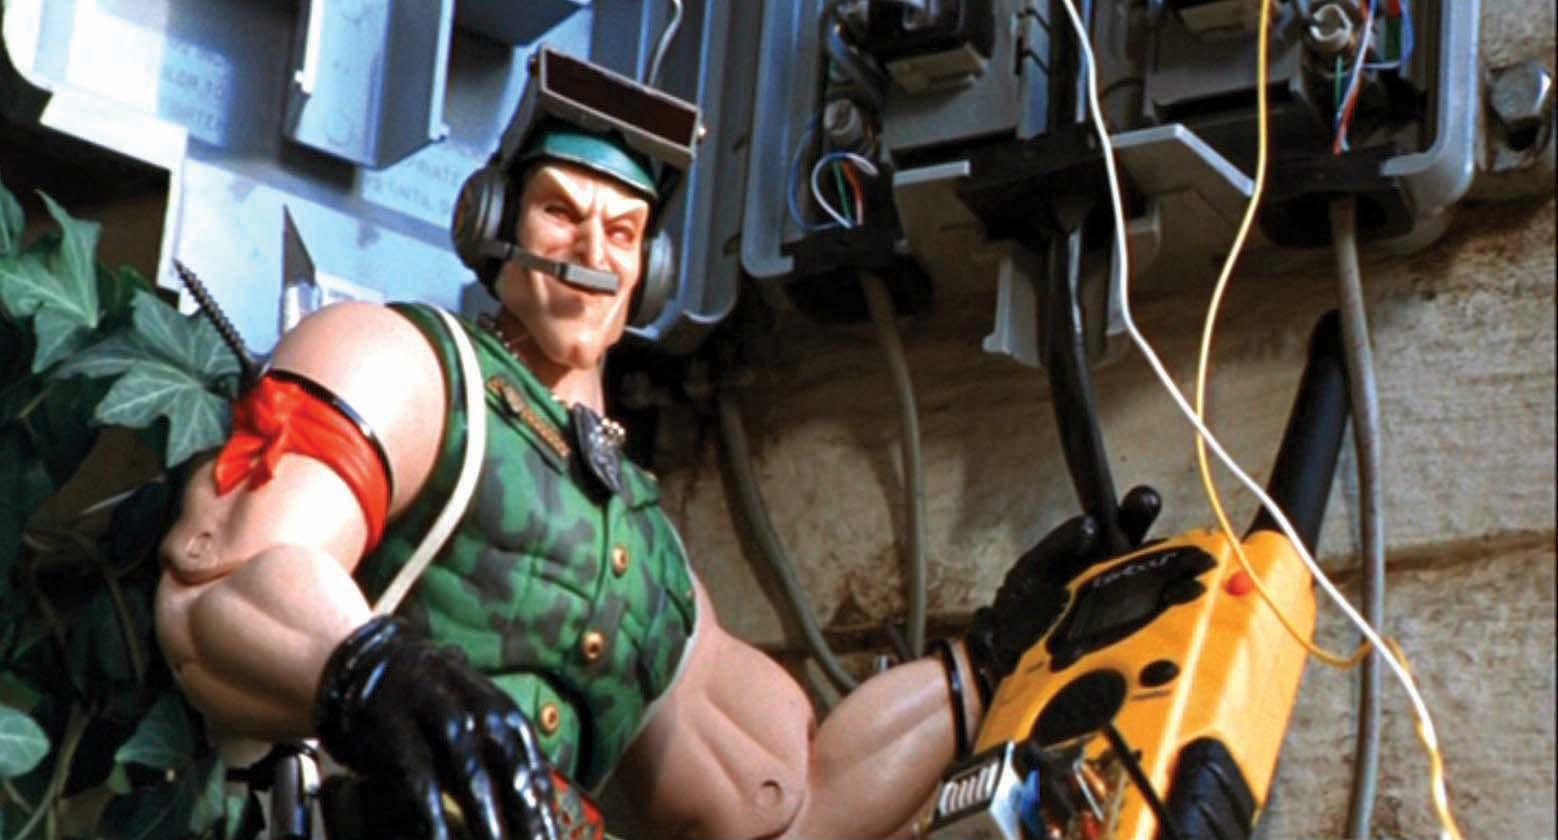 Small Soldiers Butch Meathook From small soldiers